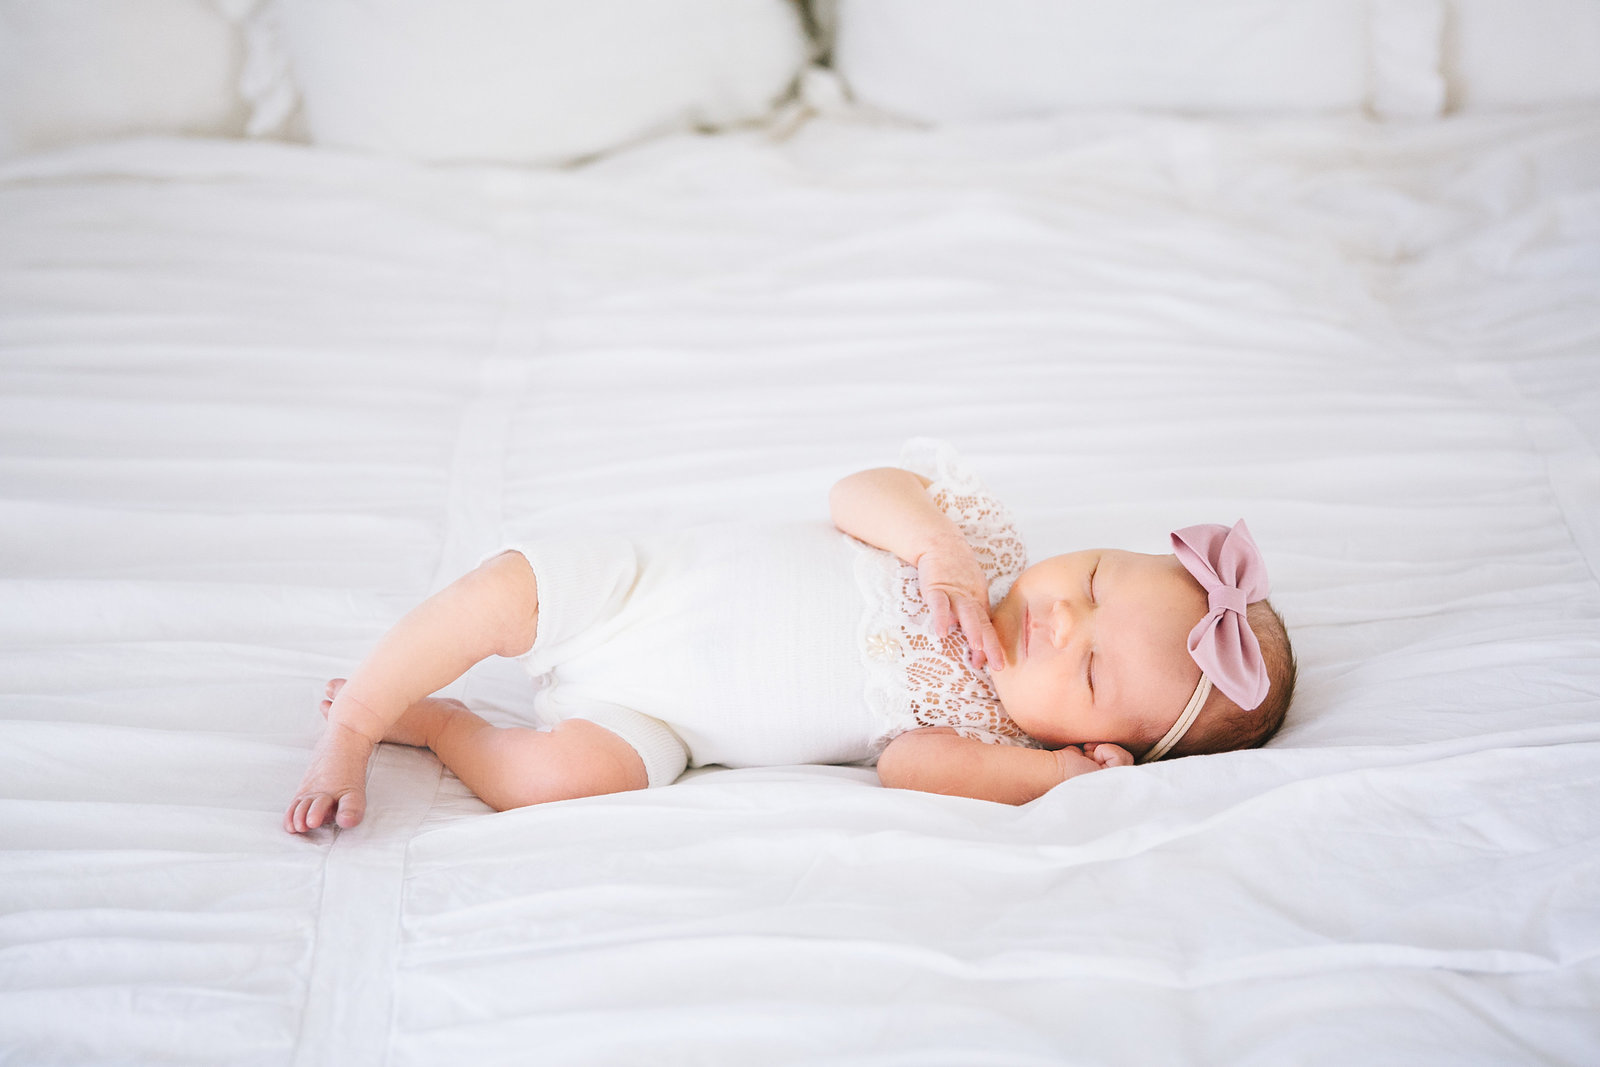 San-Juan-Capistrano-Beach-Newborn-Lifestyle-Photos_07